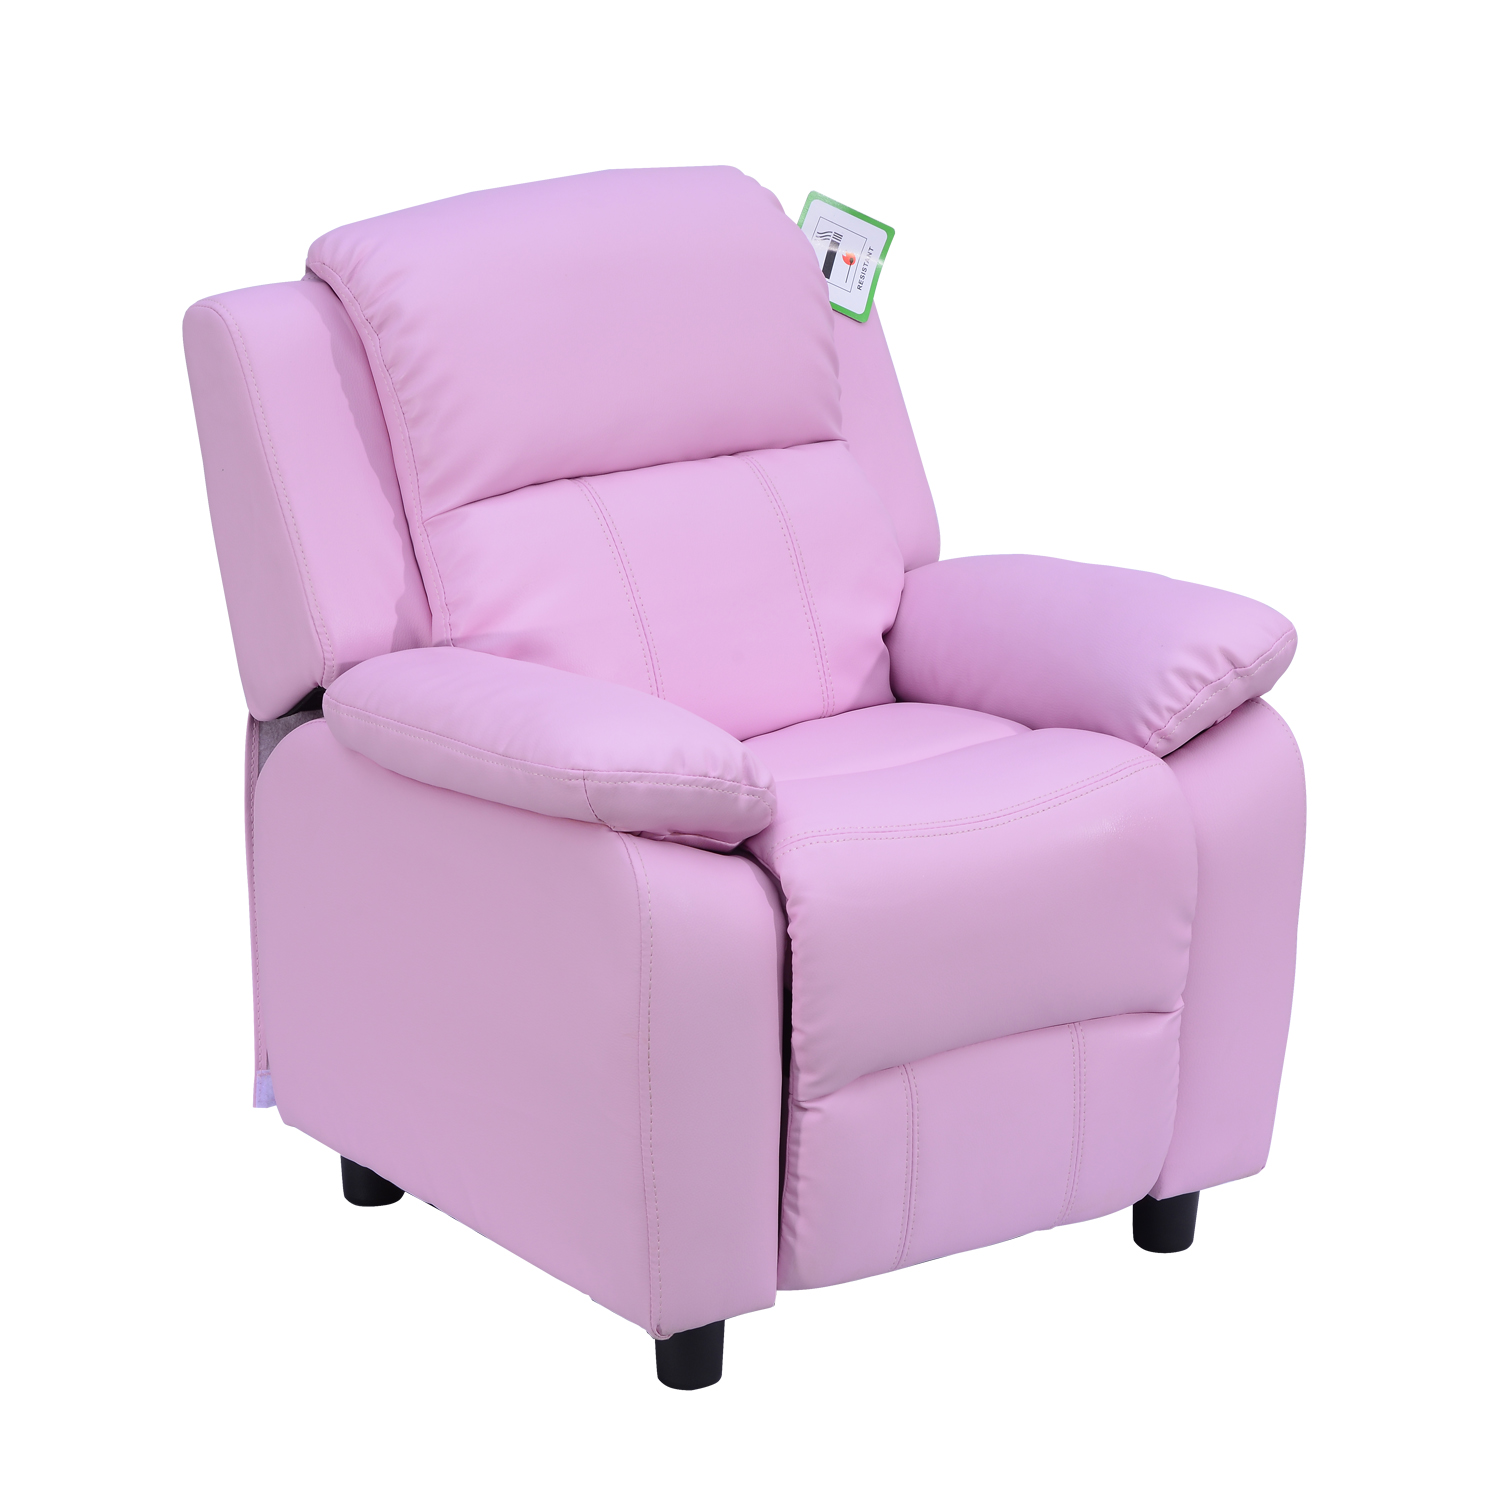 Children Kid Sofa Set Recliner Armchair Footstool Ottoman ...